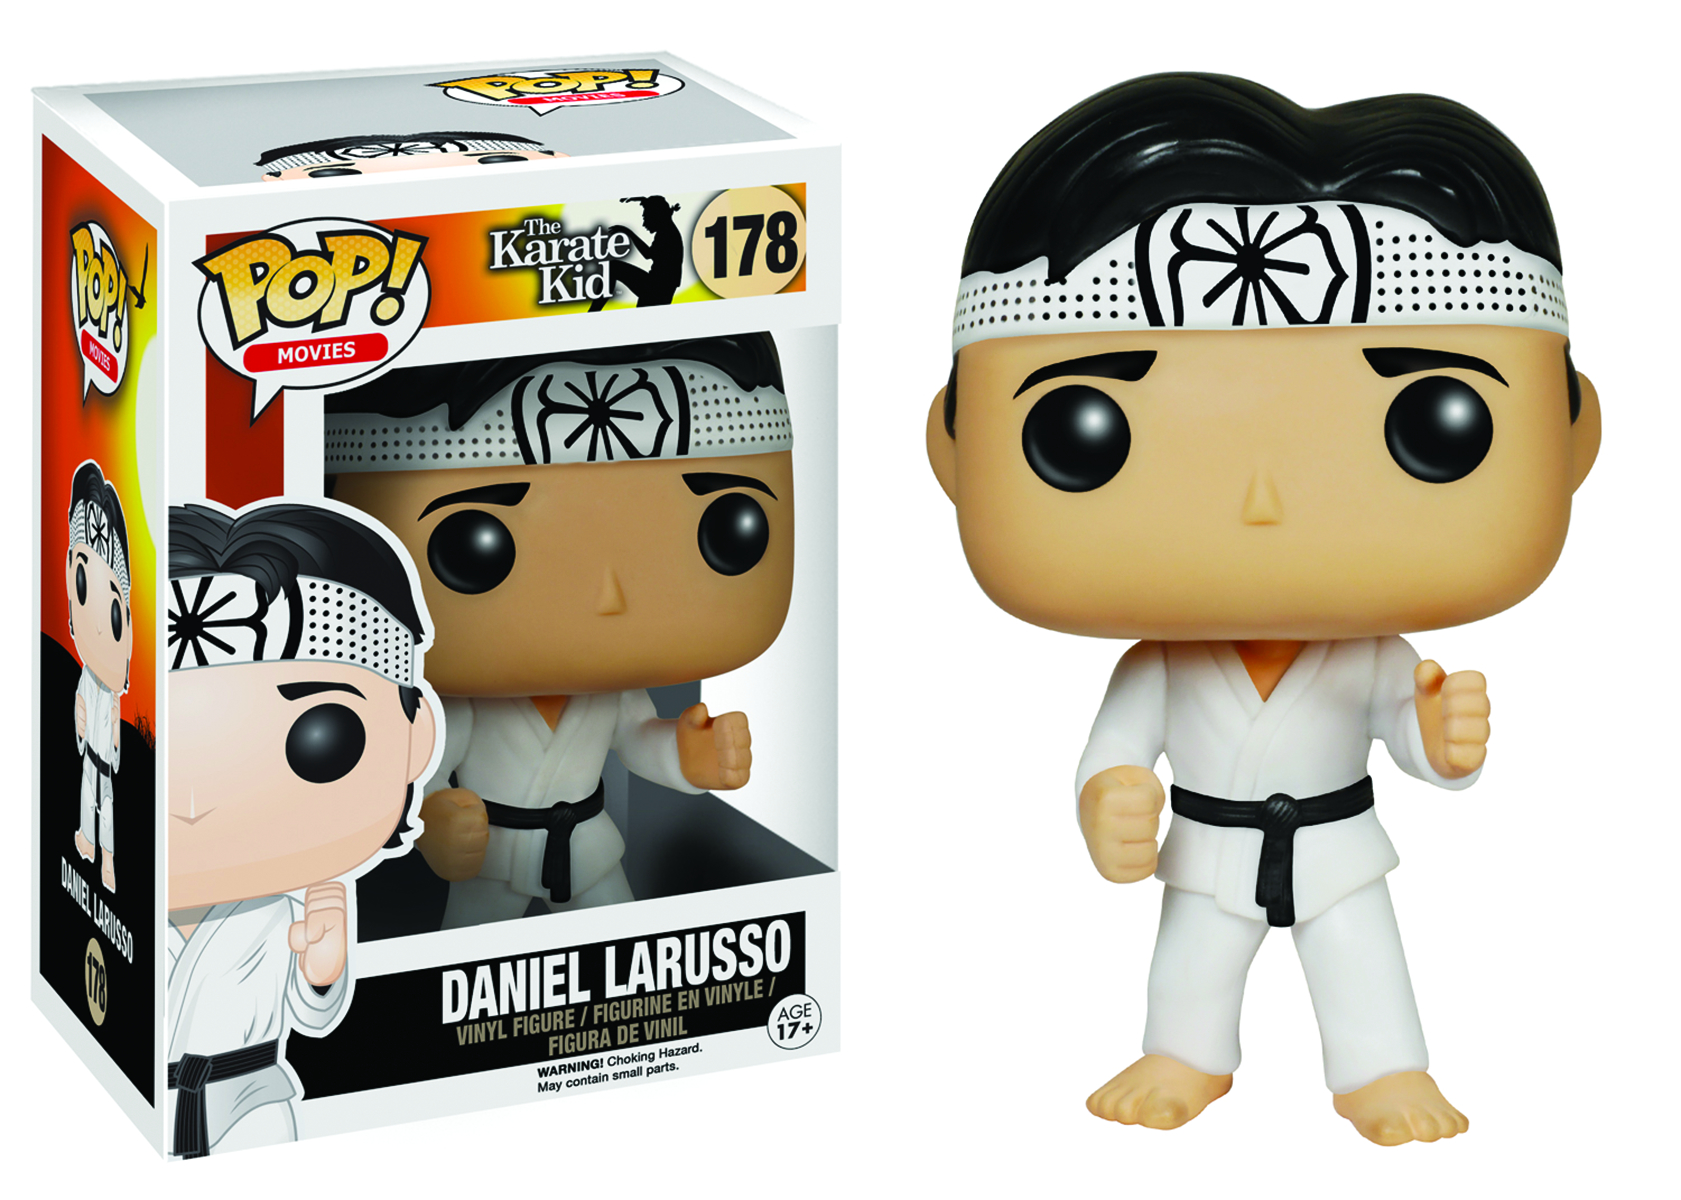 POP KARATE KID DANIEL LARUSSO VINYL FIG